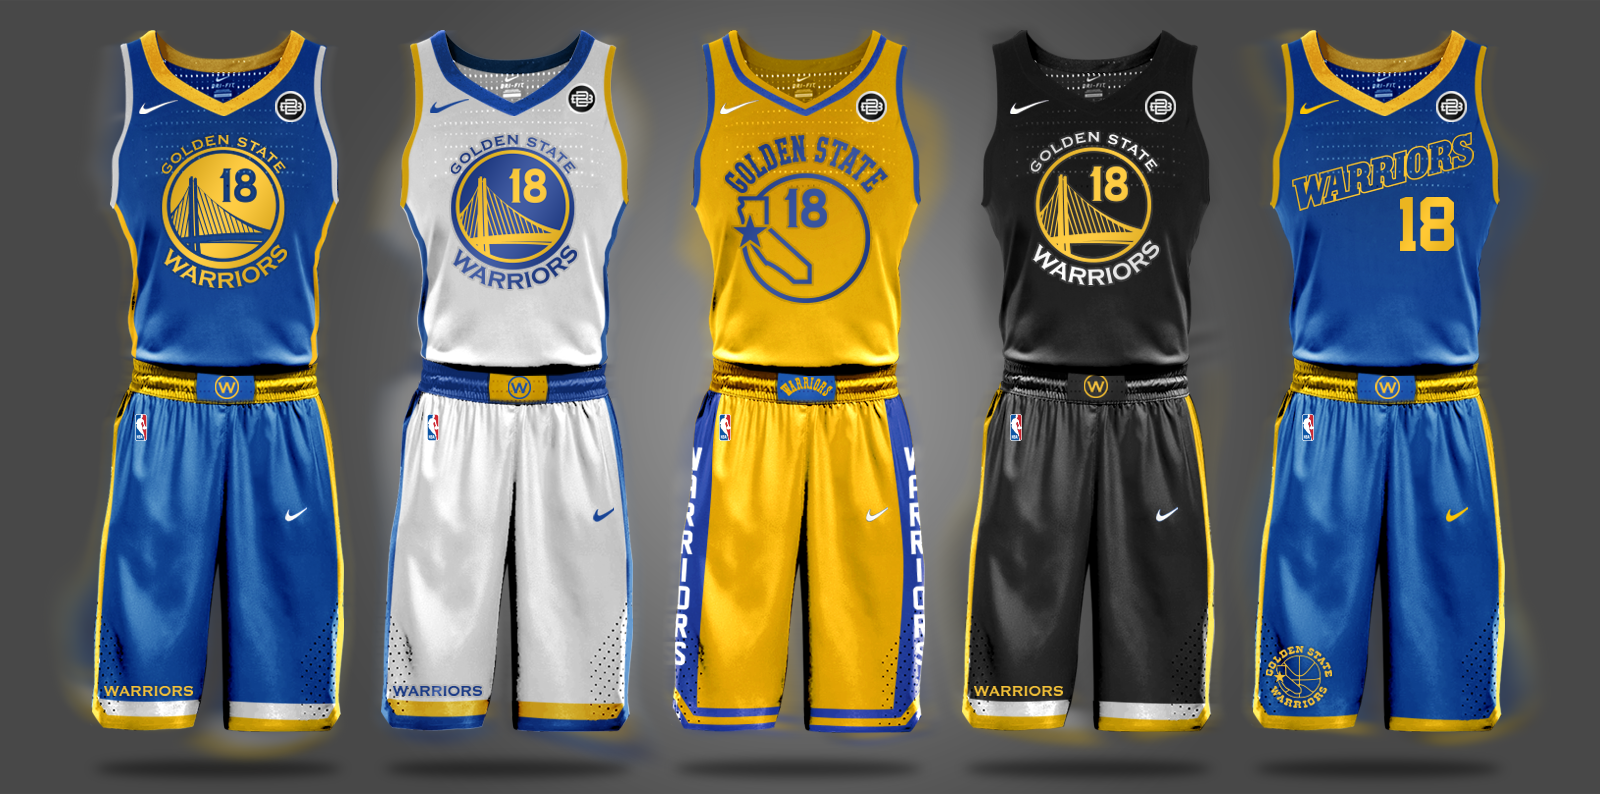 aa9b71bf77b 2017-2018 Nike Warriors Jersey Concept   warriors